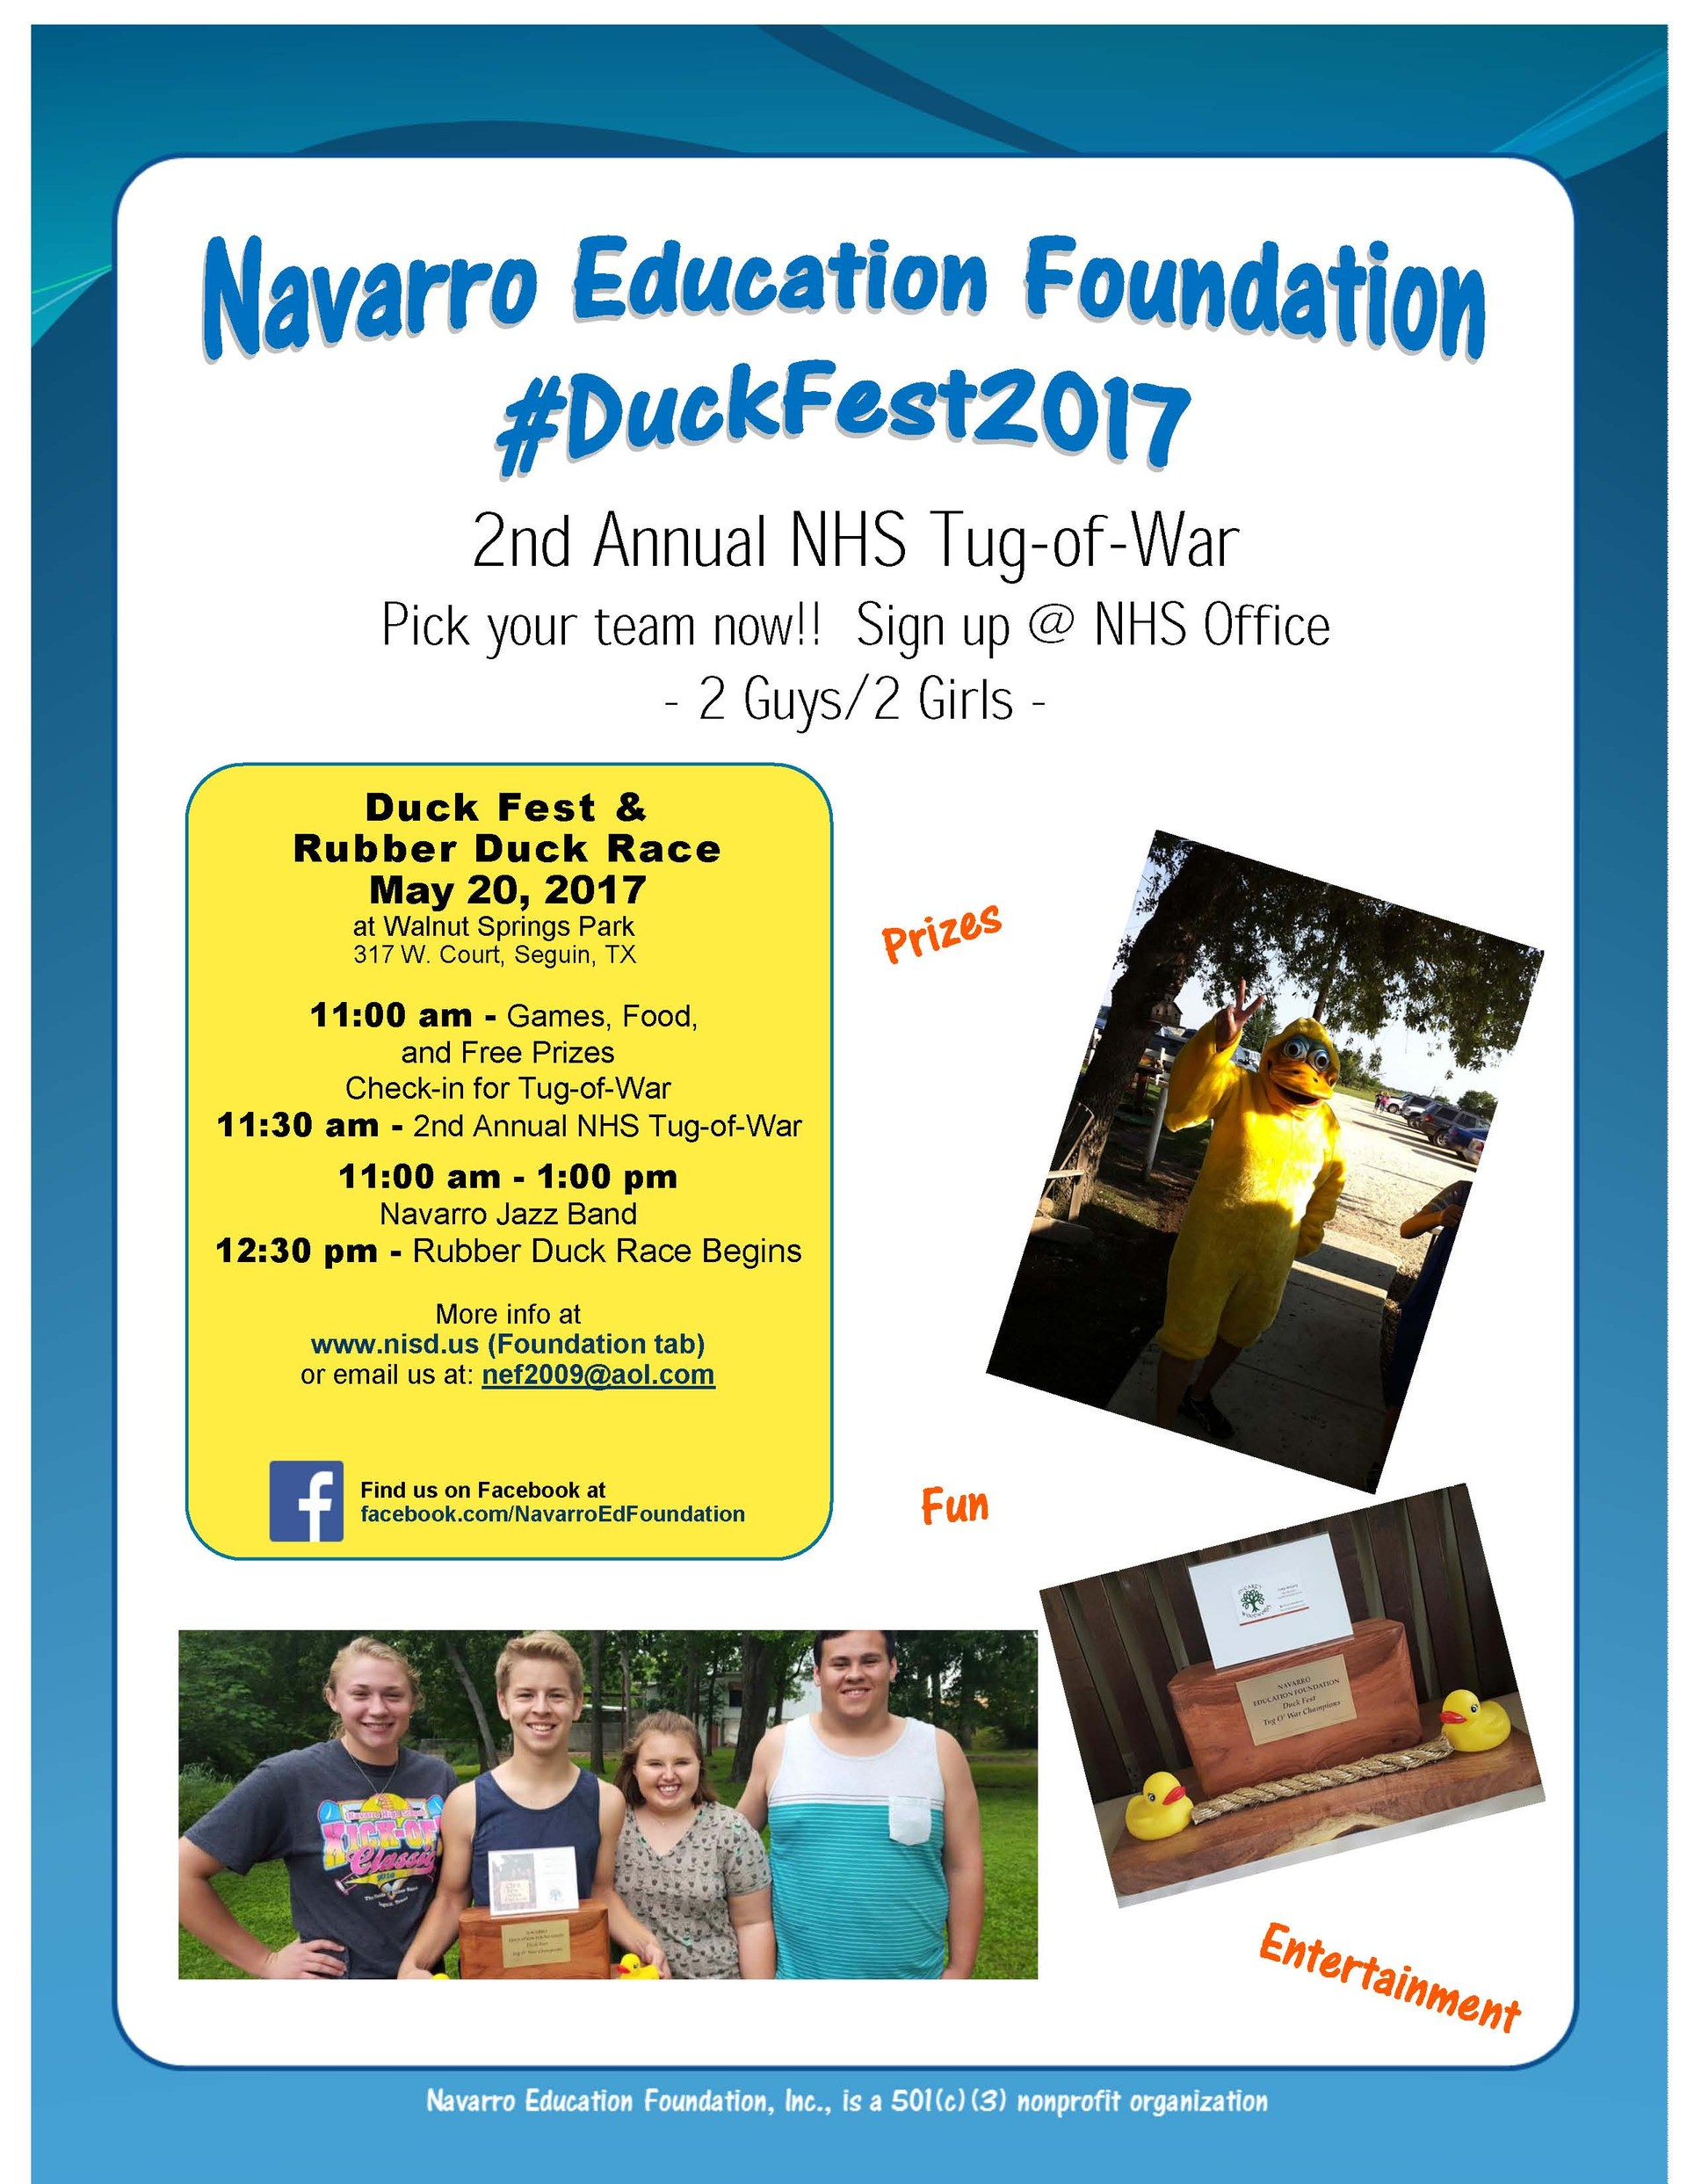 Picture of poster advertising the HS Tug of War at Duckfest.